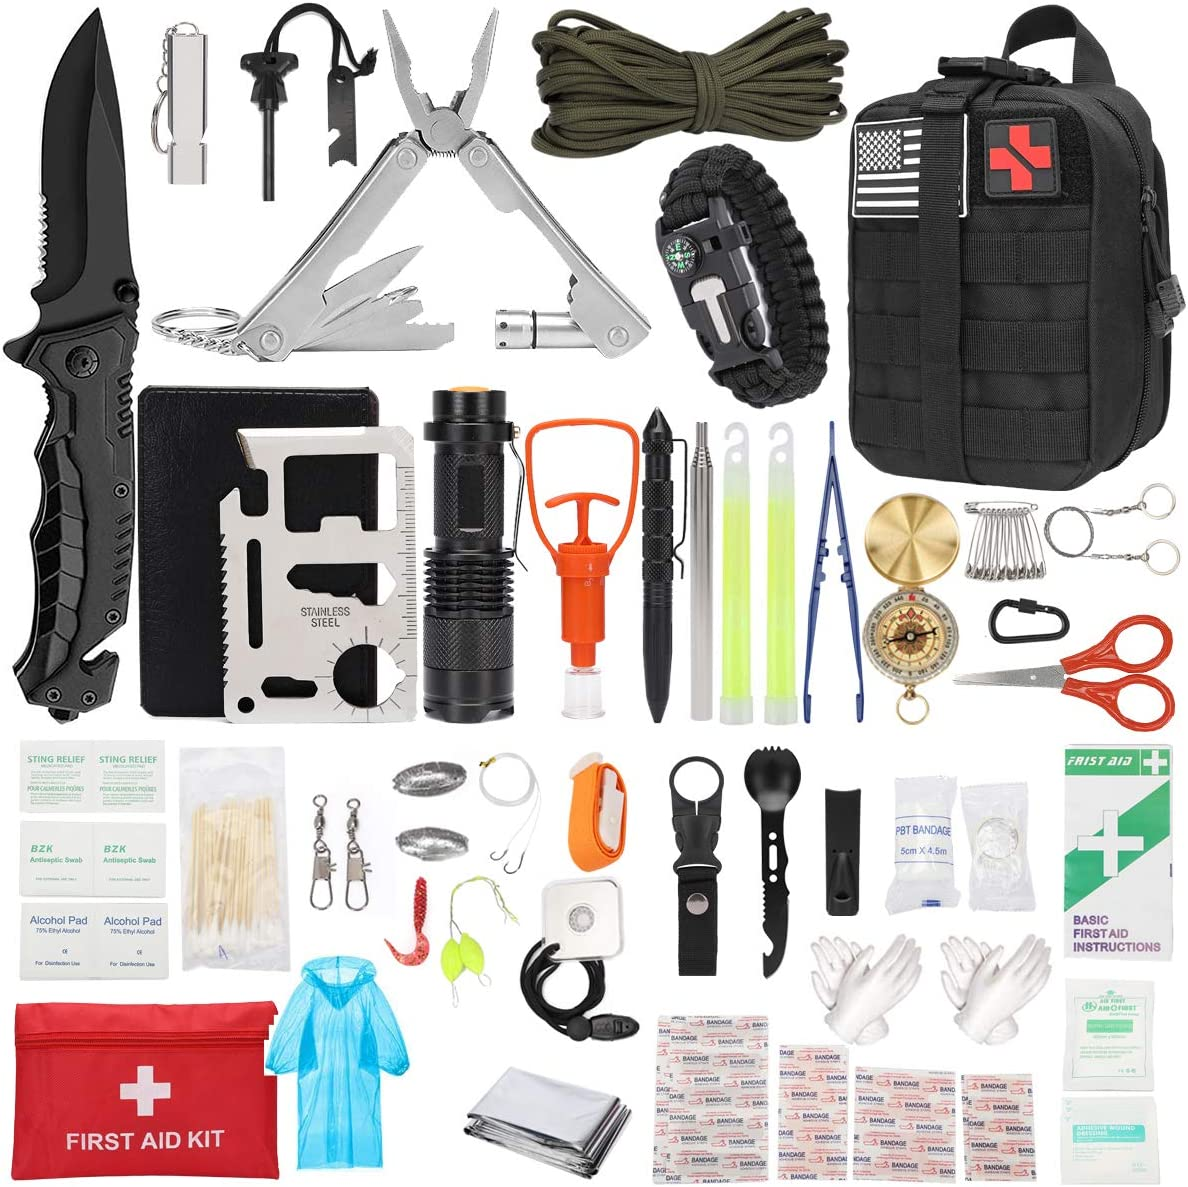 Survival Gear and Equipment,haffy Emergency Survival Kit and First Aid Kit Gift for Men ,Trauma Bag Compatible Outdoor Tactical Gear for Fishing Camping Hunting Hiking Earthquake